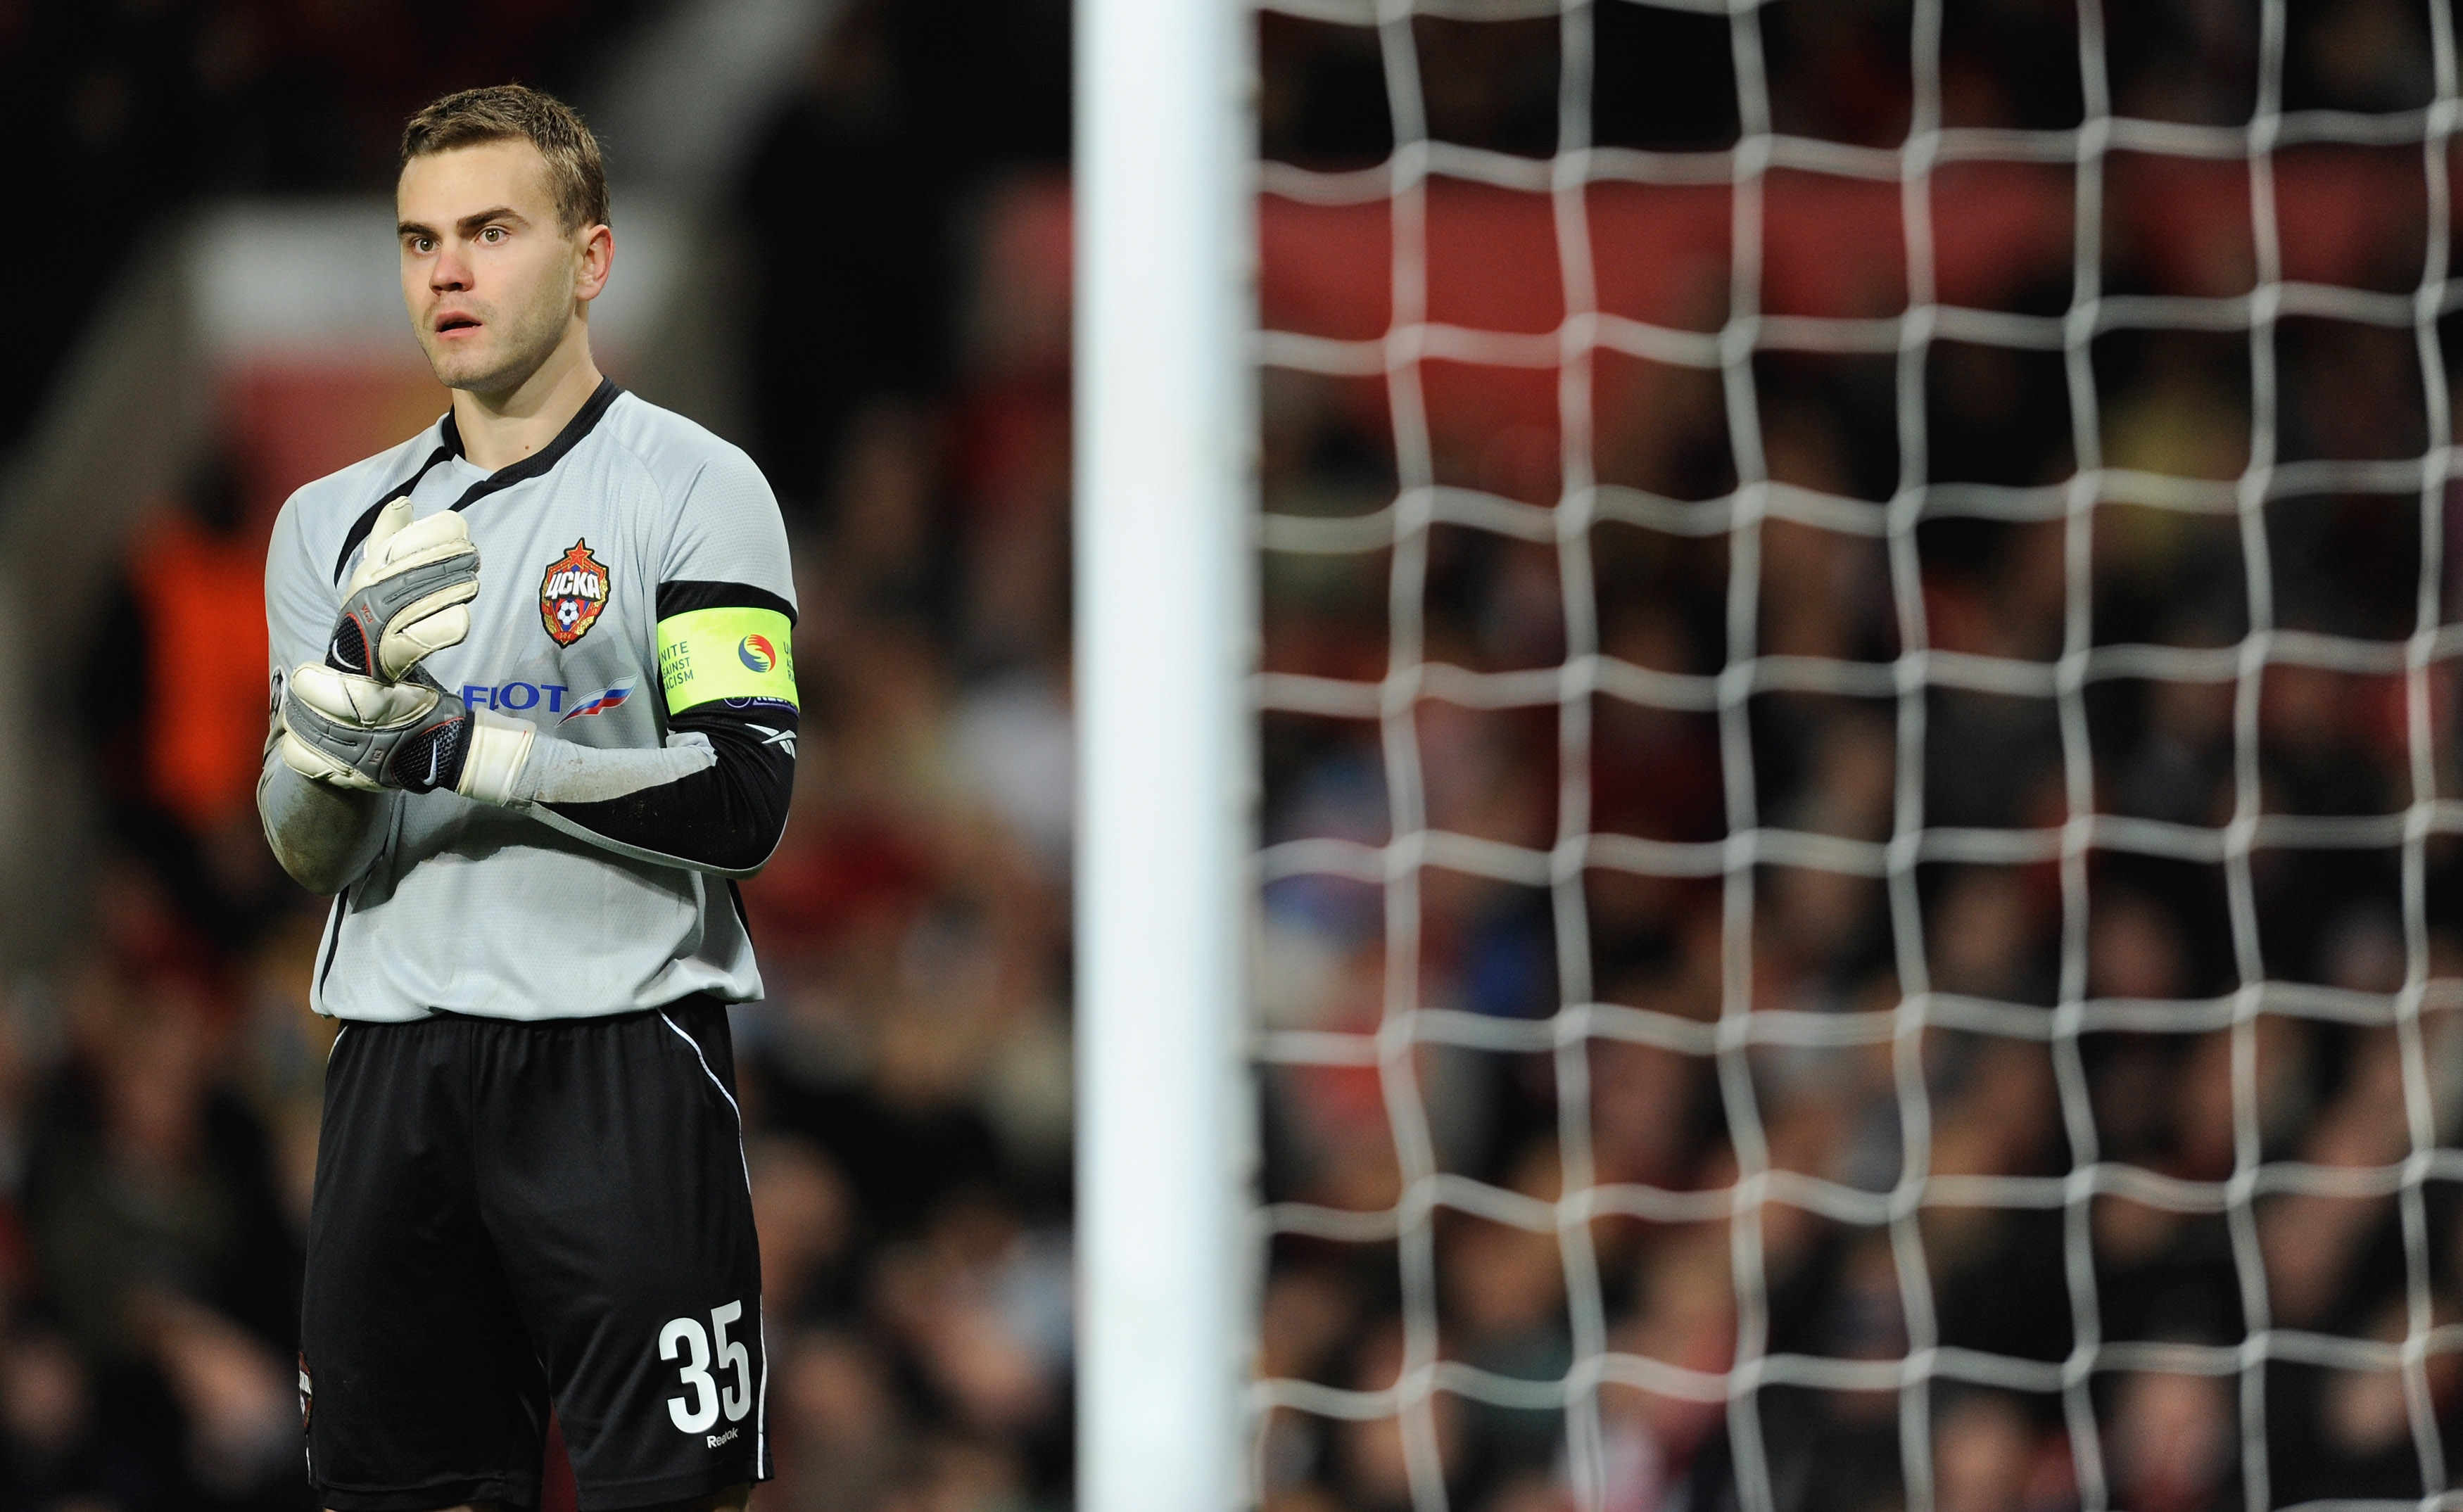 MANCHESTER, ENGLAND - NOVEMBER 03:  Igor Akinfeev of CSKA Moscow looks on during the UEFA Champions League Group B match between Manchester United and CSKA Moscow at Old Trafford on November 3, 2009 in Manchester, England.  (Photo by Michael Regan/Getty I